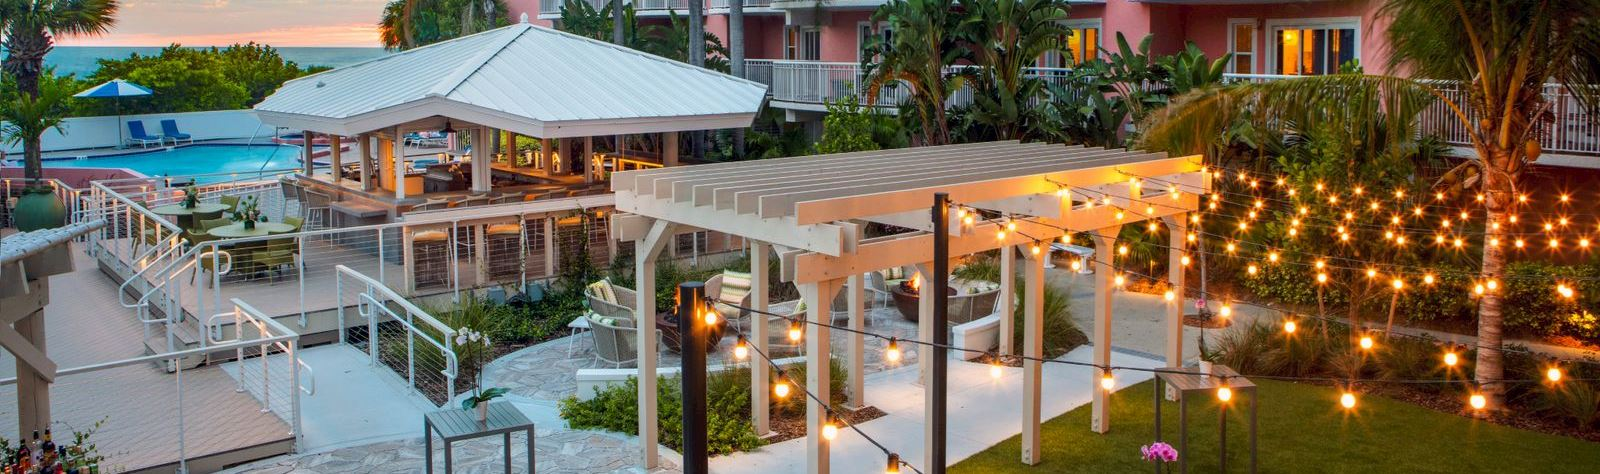 Group Events in Florida Hotel